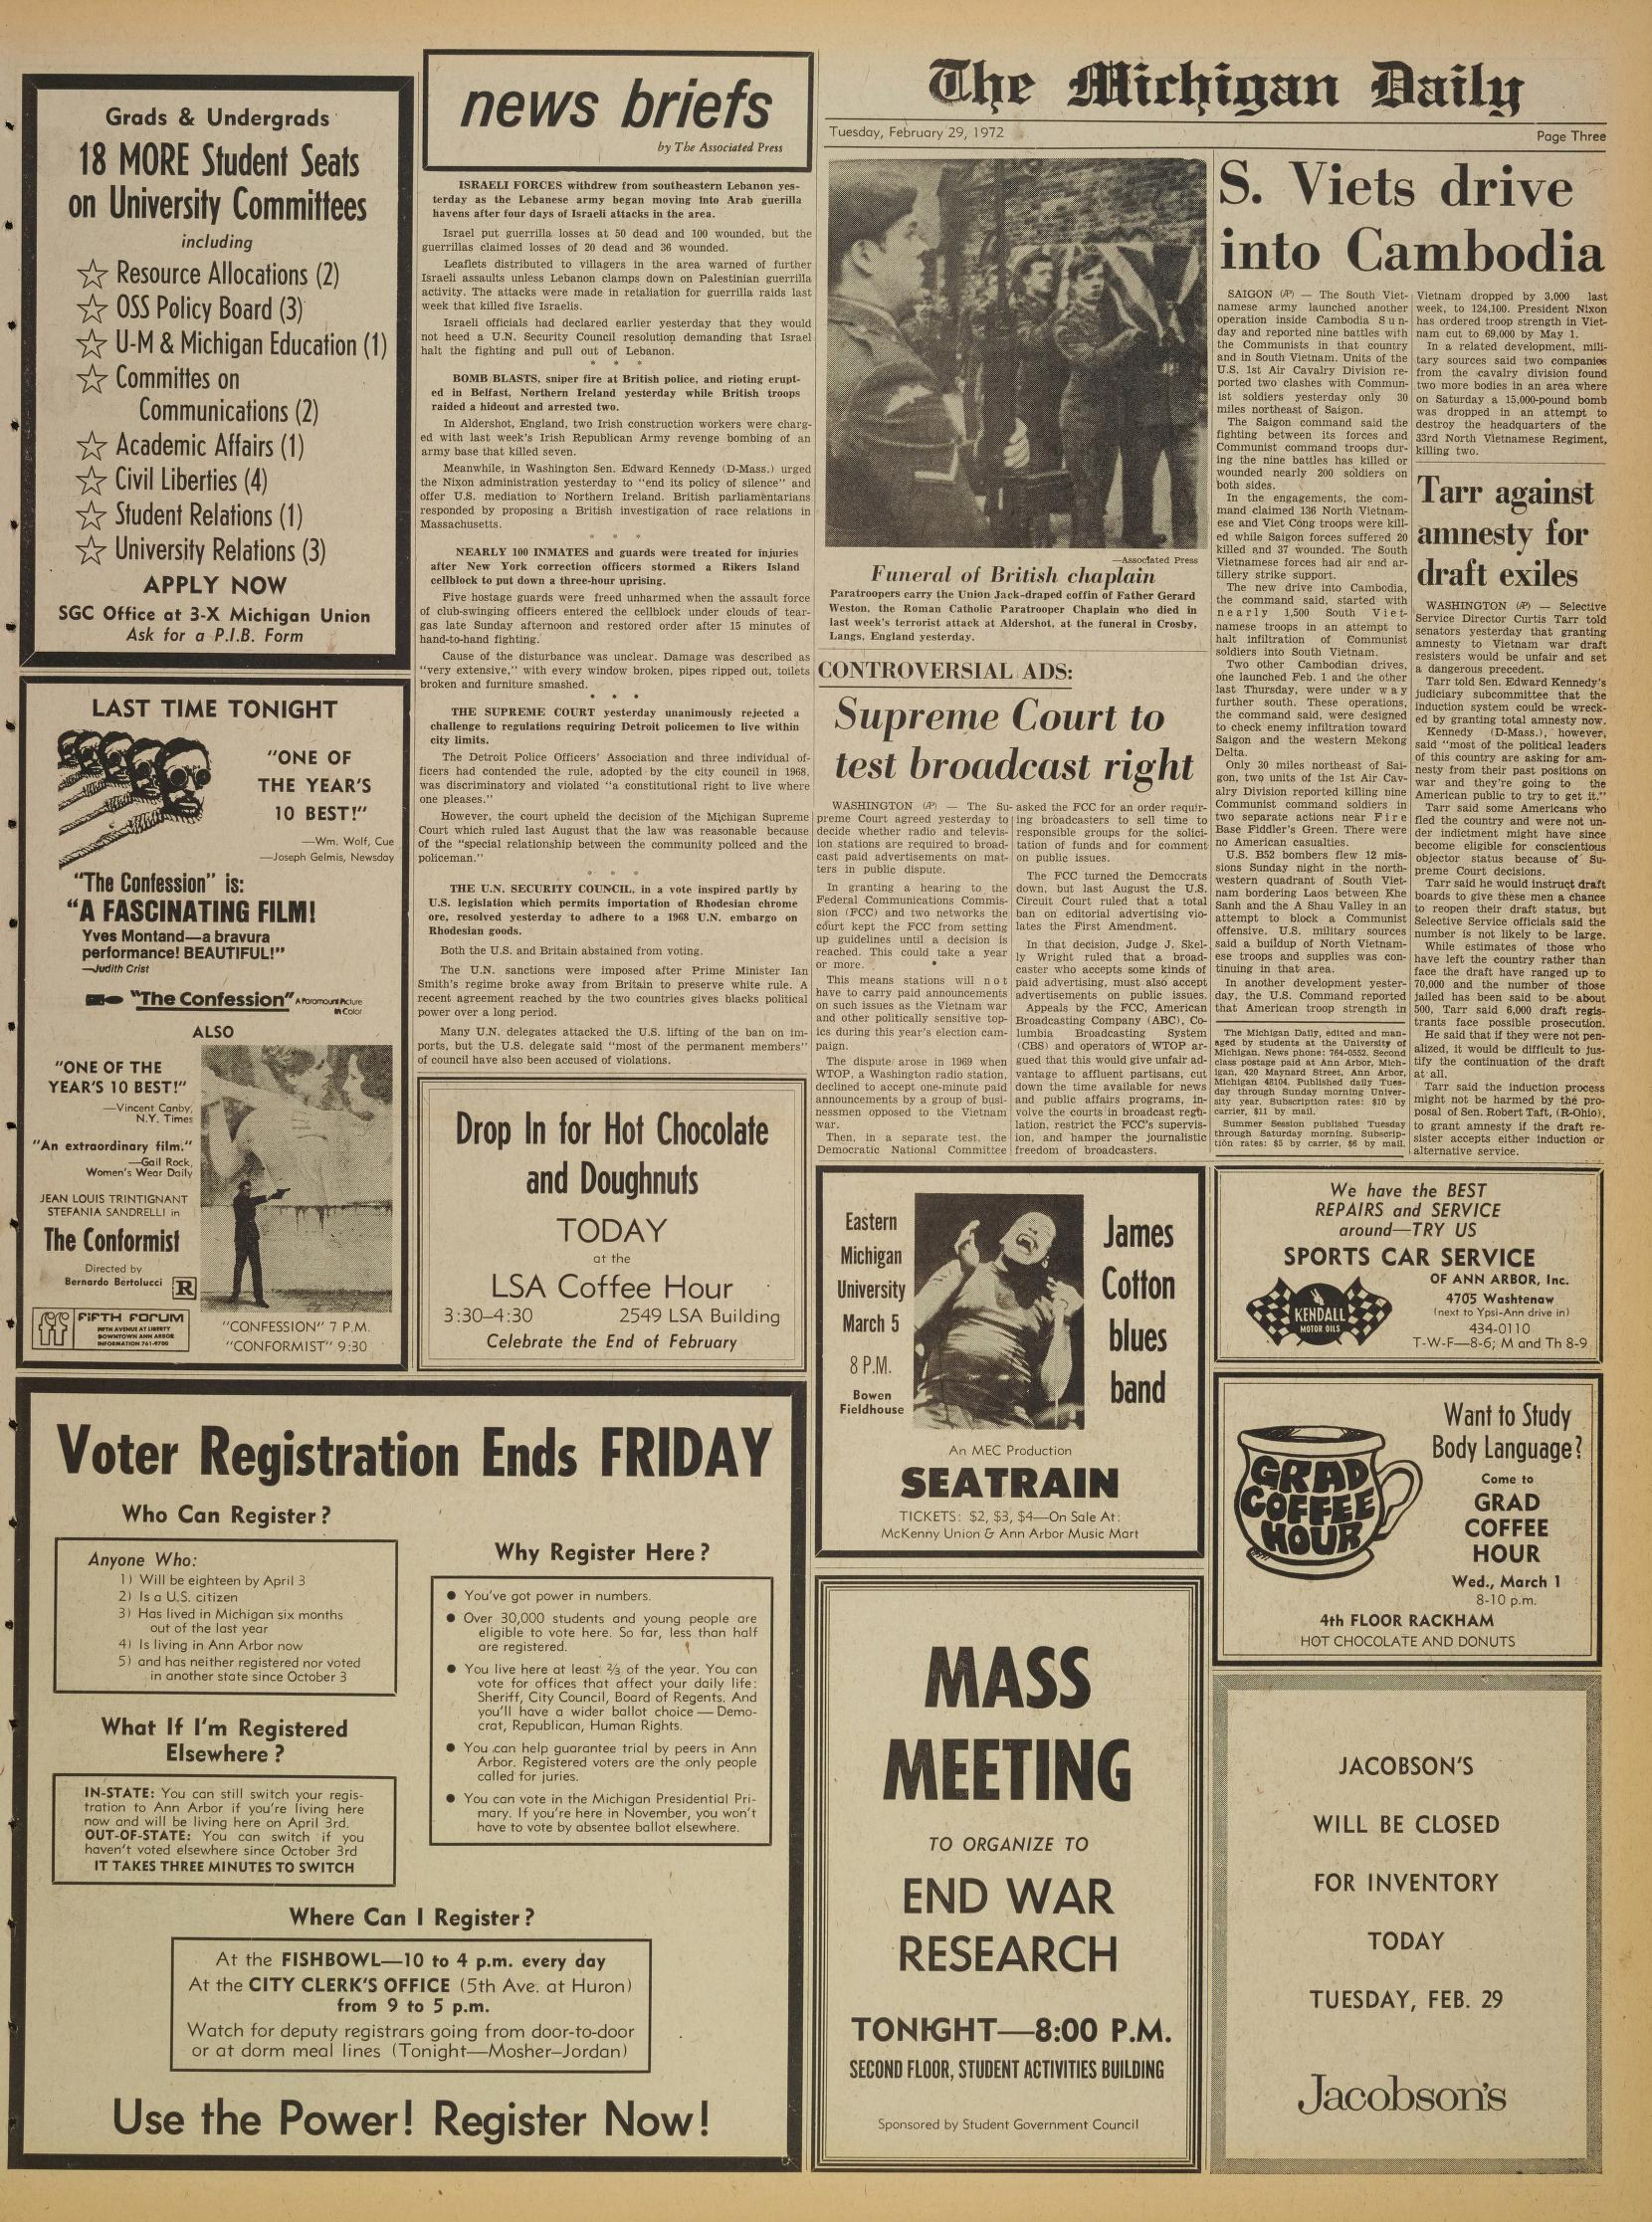 Michigan Daily Digital Archives - February 29, 1972 (vol  82